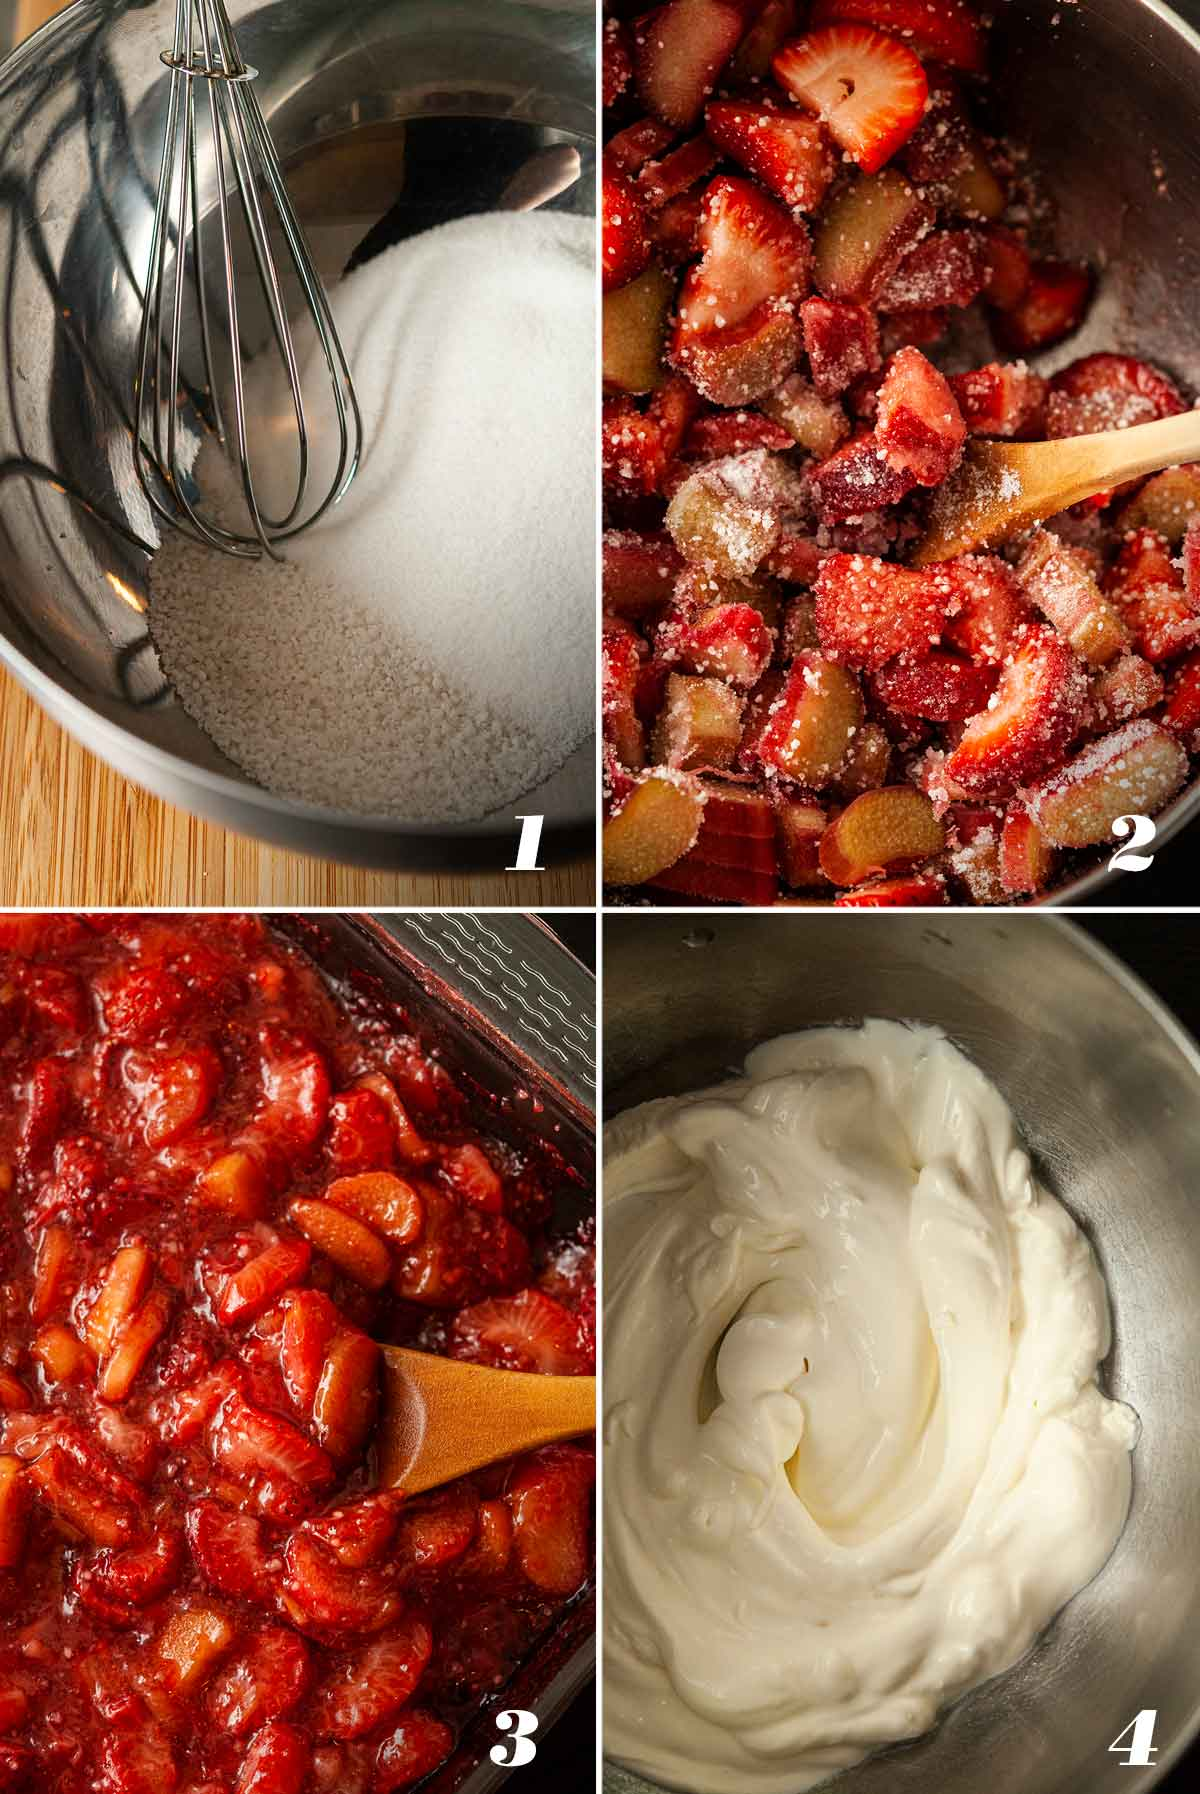 A collage of 4 numbered images showing how to make strawberry-rhubarb and whipped cream.